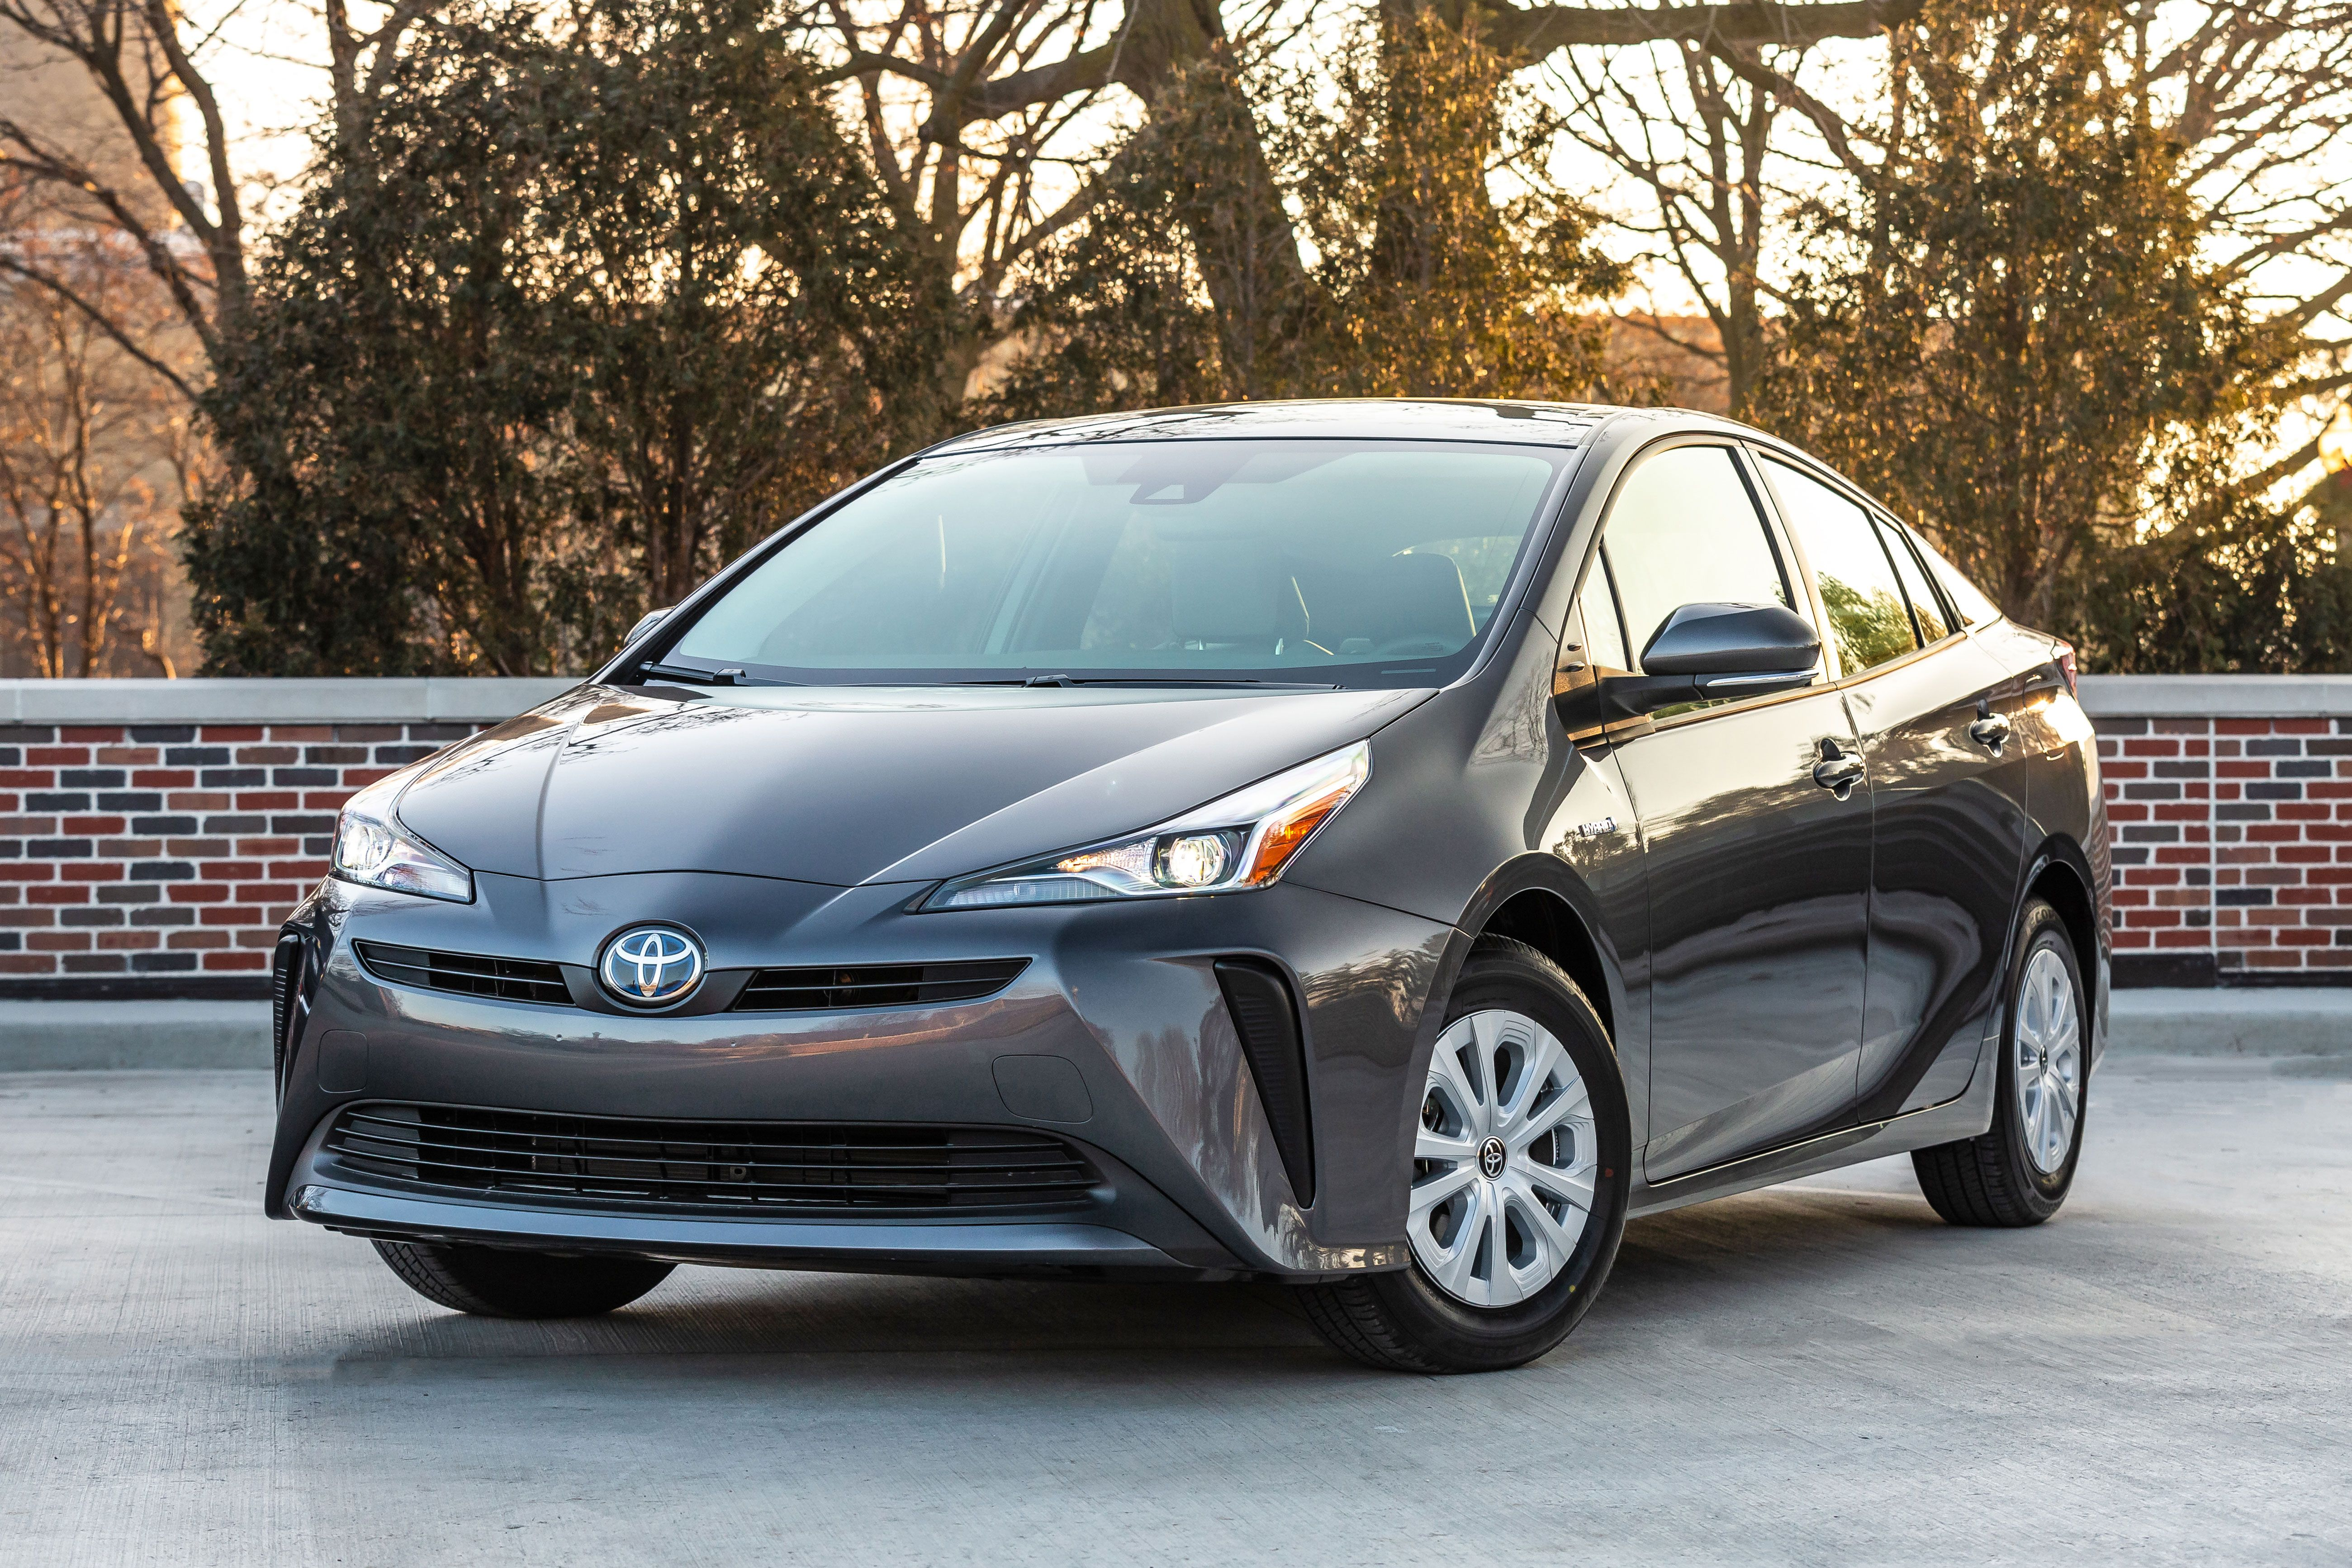 The 10 Cheapest New Hybrid Cars and SUVs You Can Buy in 2019